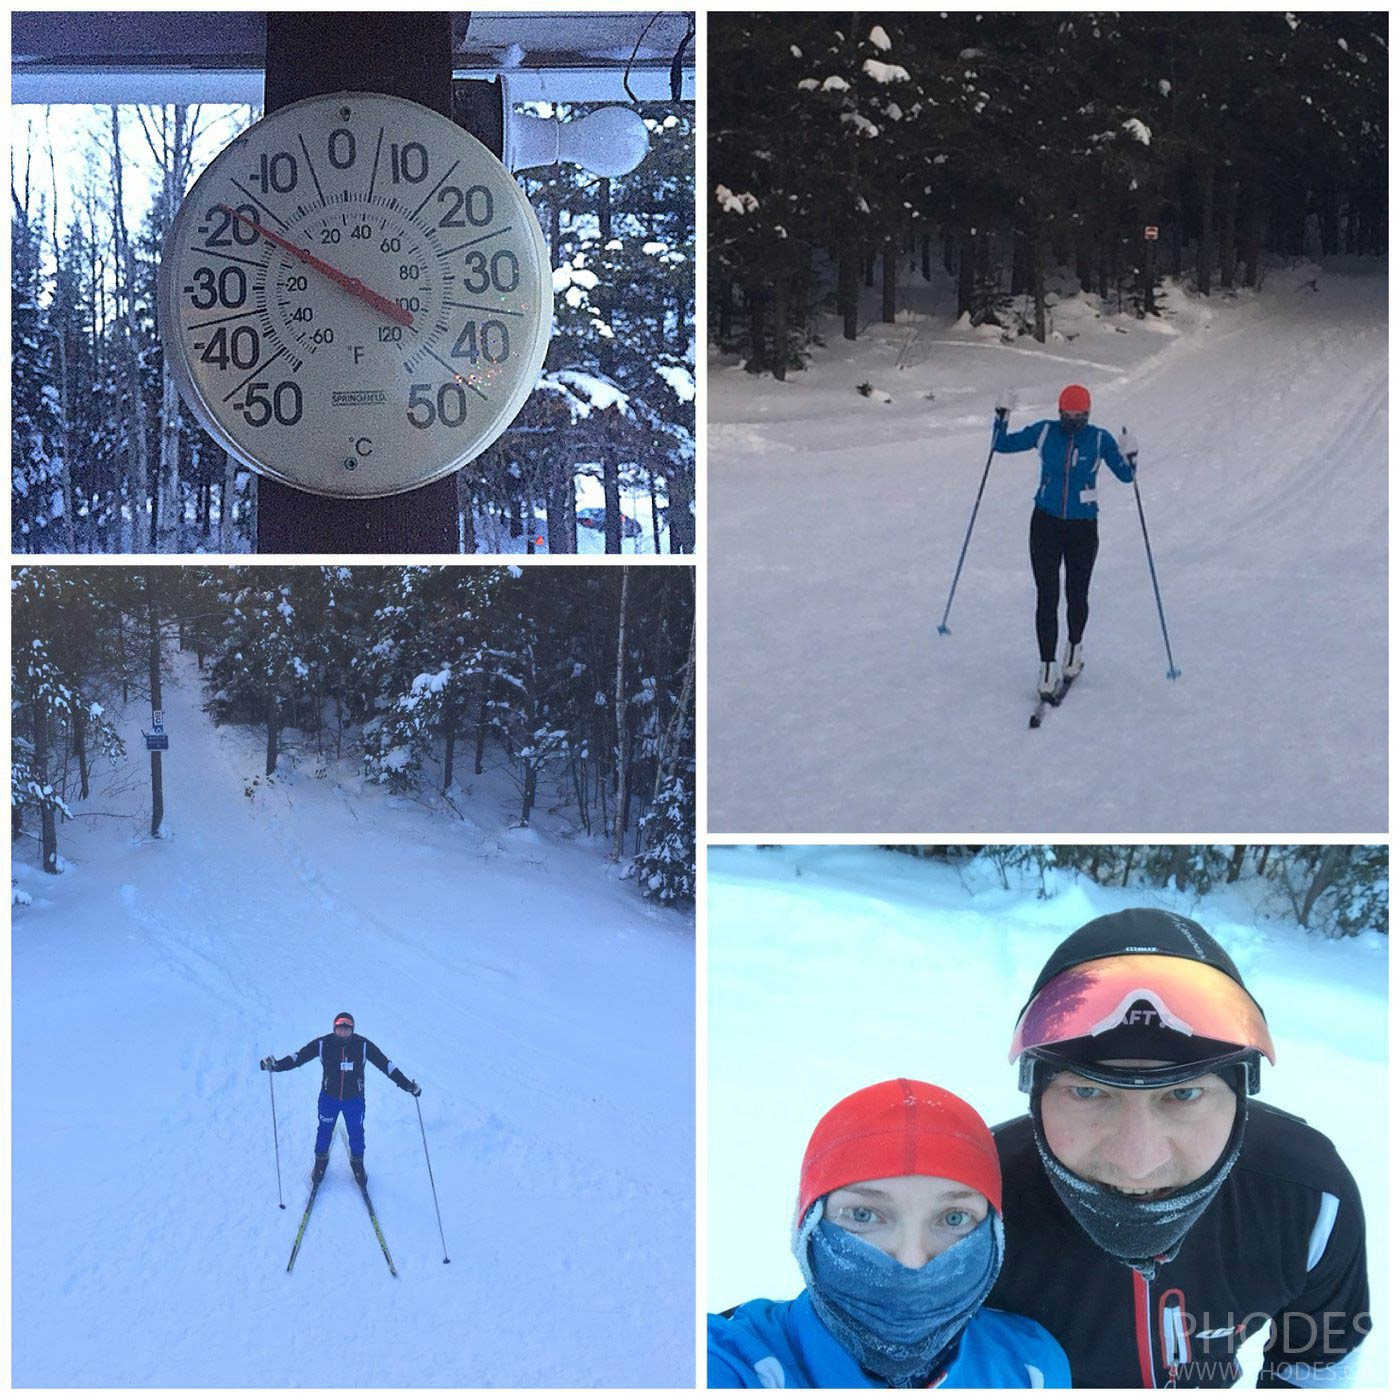 Cross country ski in Base de Plain Air Les Source Joyeuses in La Malbaie